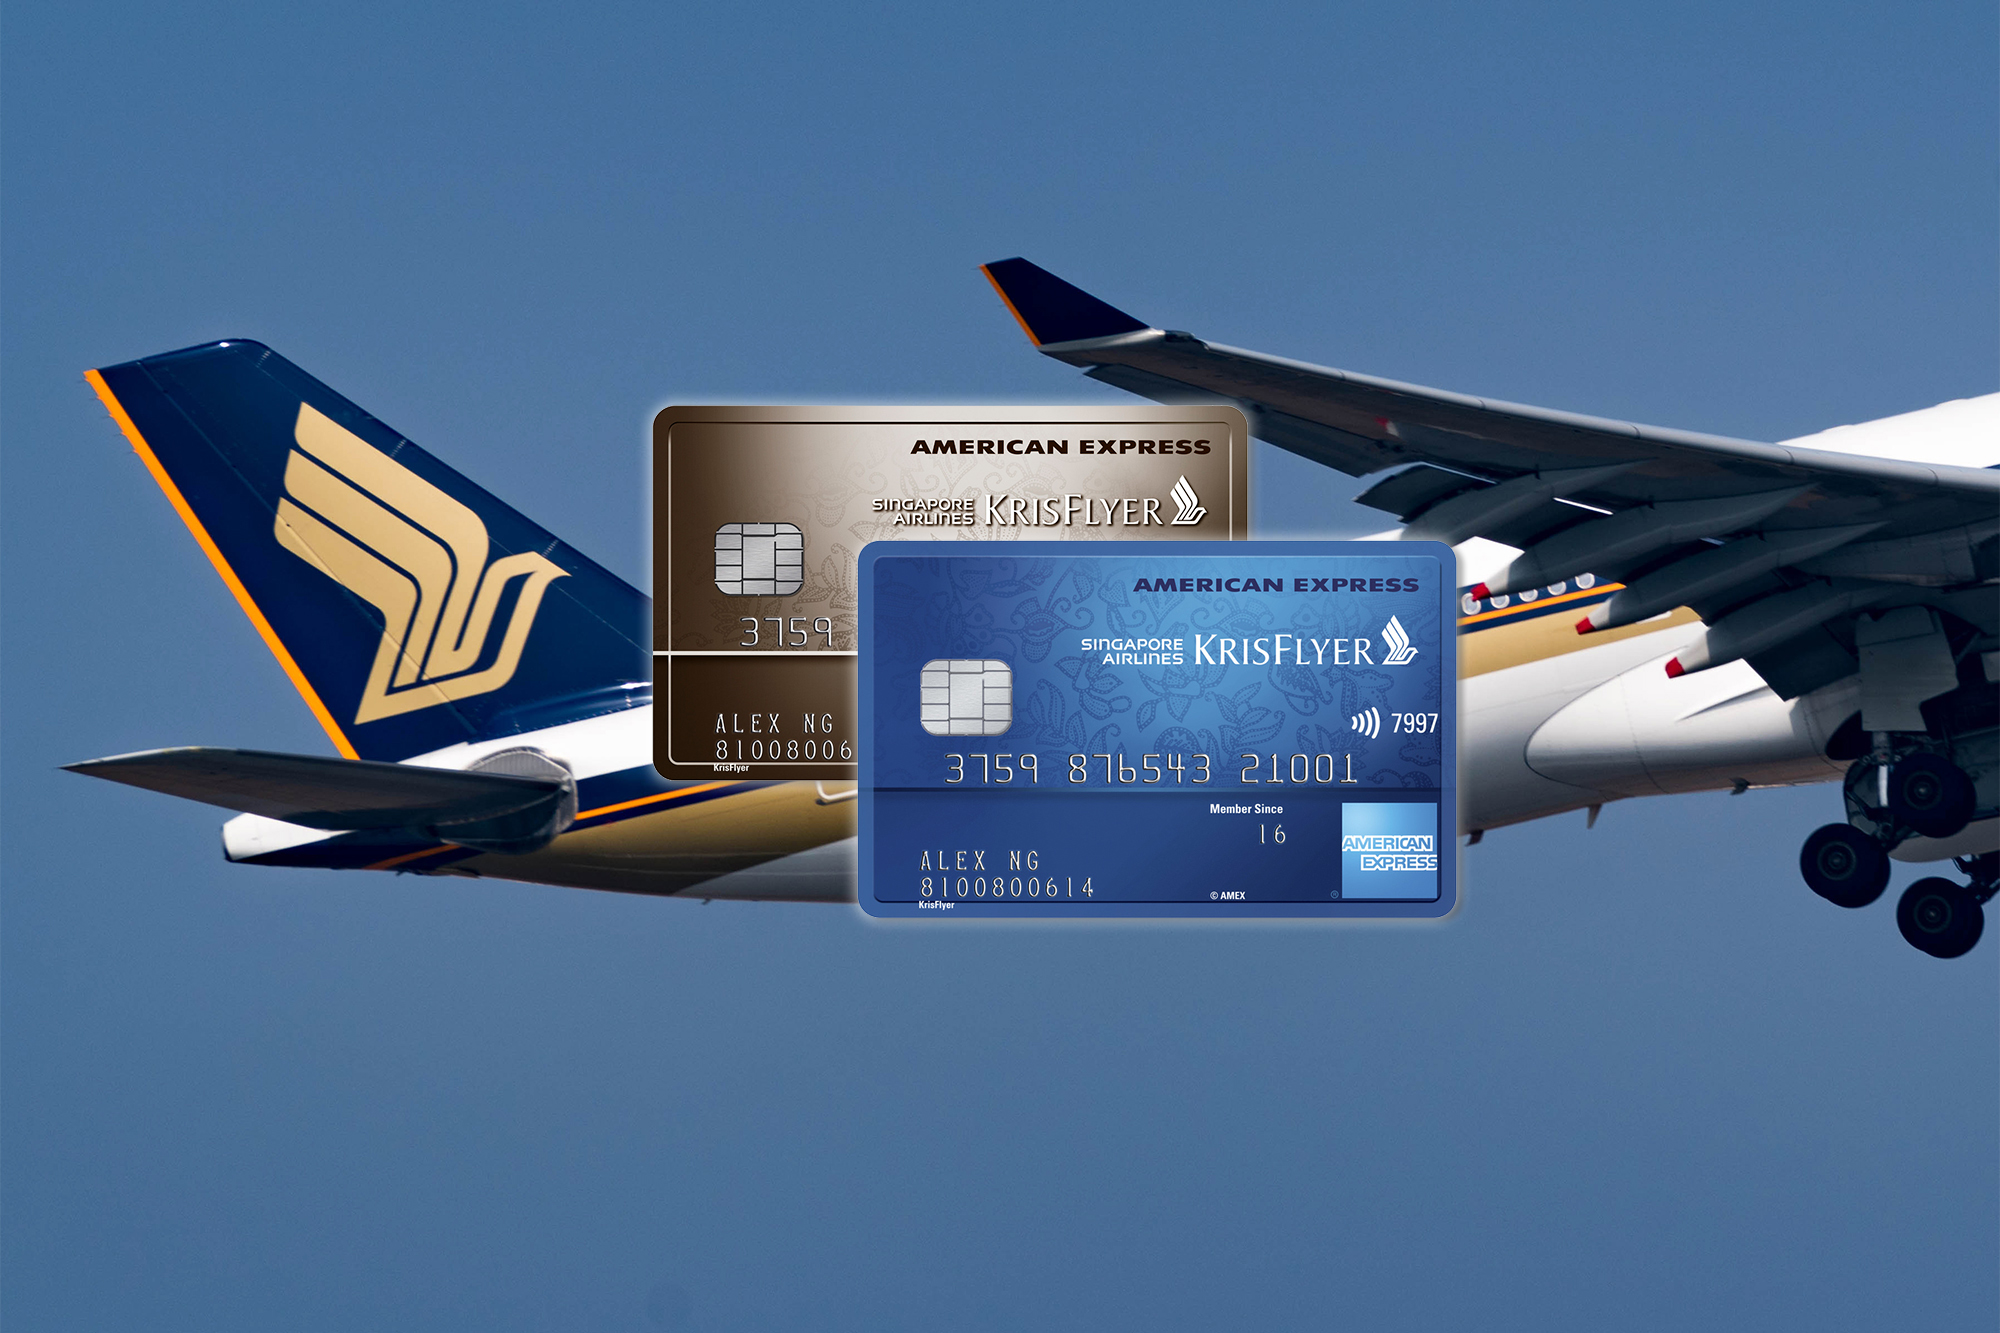 Amex extends sign-up bonuses for the KrisFlyer co-brand cards